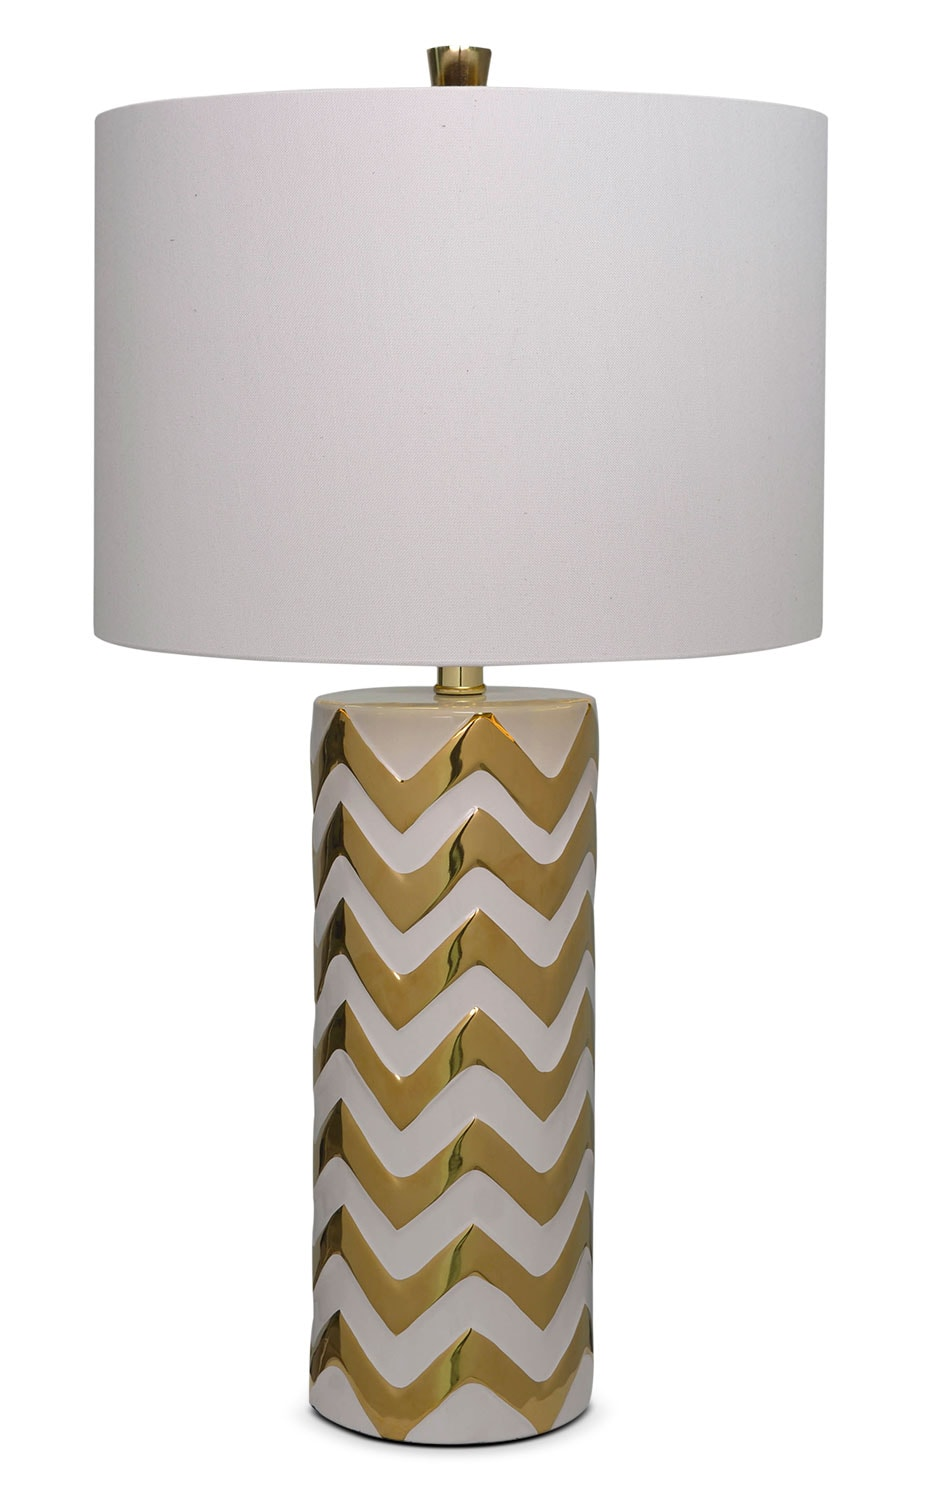 "Accent and Occasional Furniture - Penelope 27"" Table Lamp - Gold and Beige"